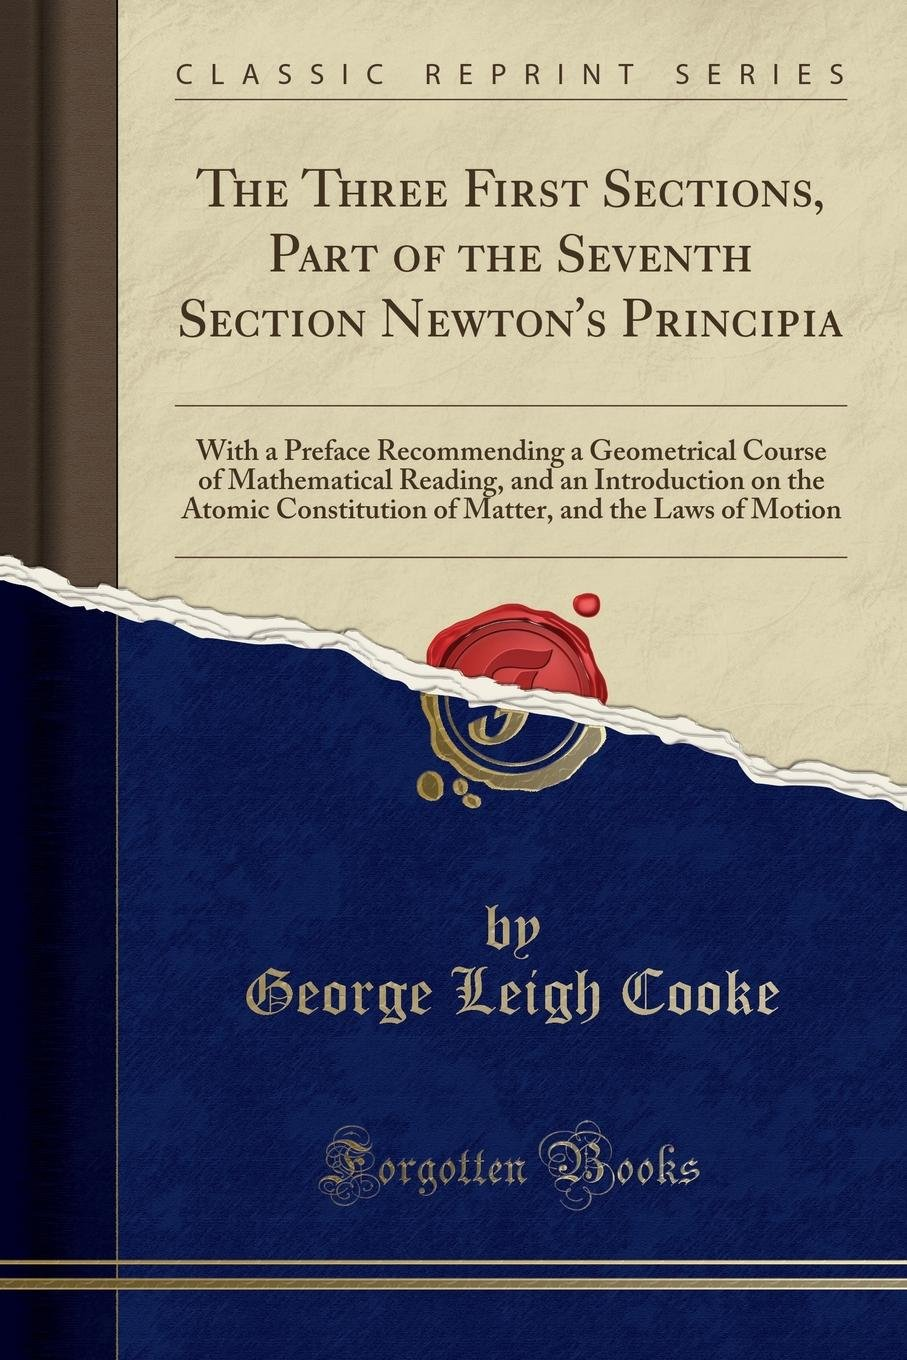 Download The Three First Sections, Part of the Seventh Section Newton's Principia: With a Preface Recommending a Geometrical Course of Mathematical Reading, ... and the Laws of Motion (Classic Reprint) pdf